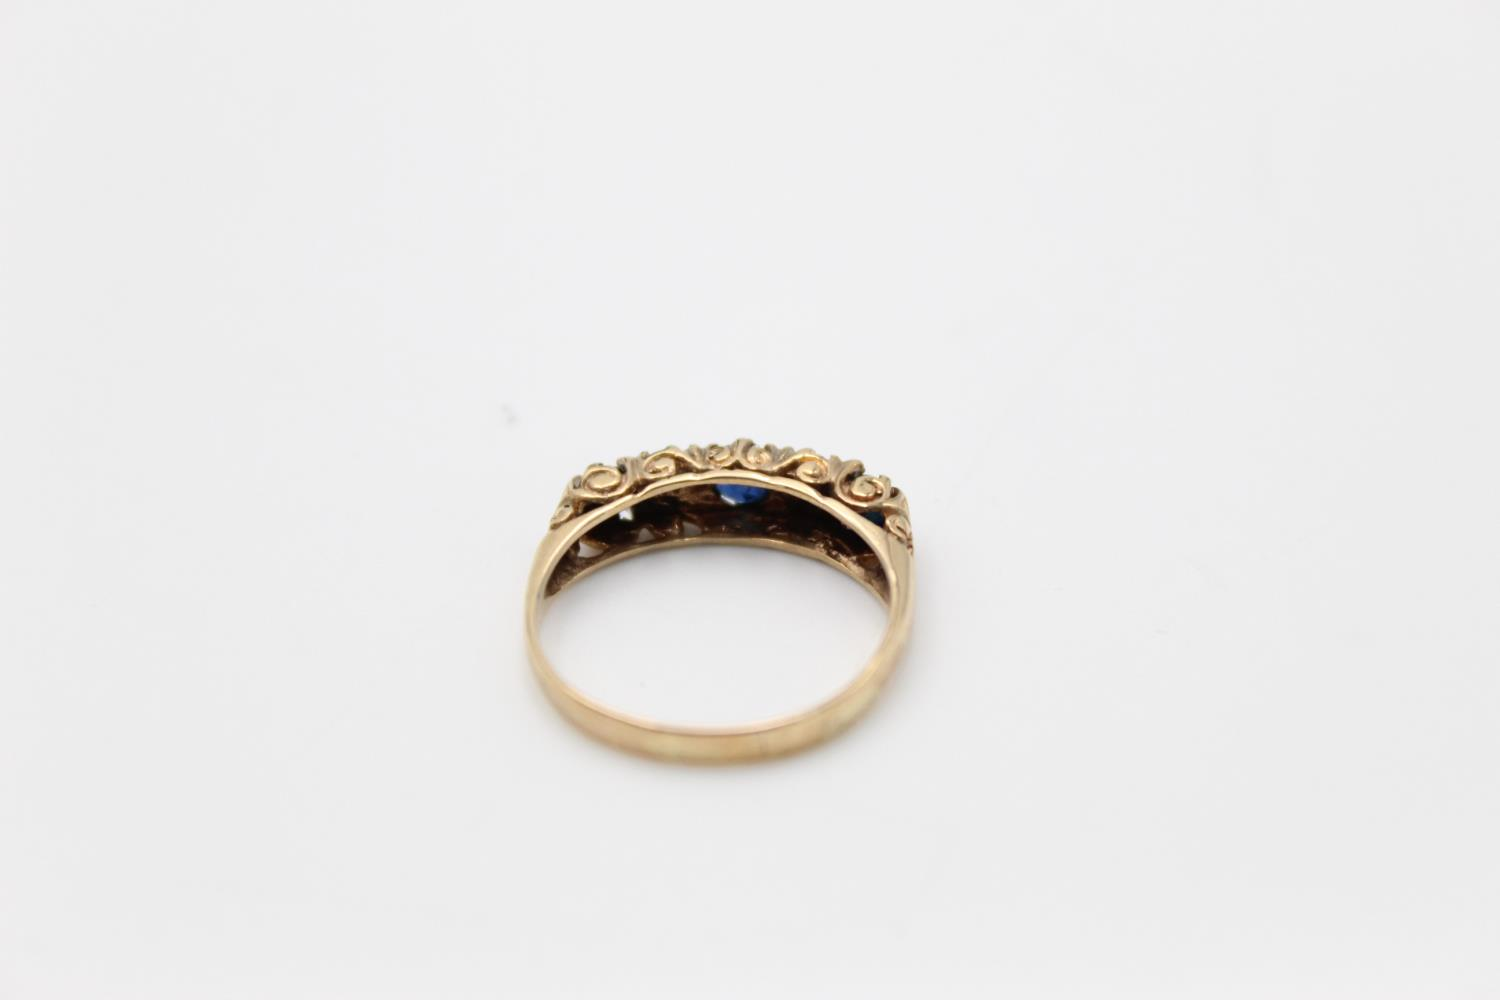 9ct Gold sapphire & diamond gypsy ring 1.8g Size M - Image 3 of 4